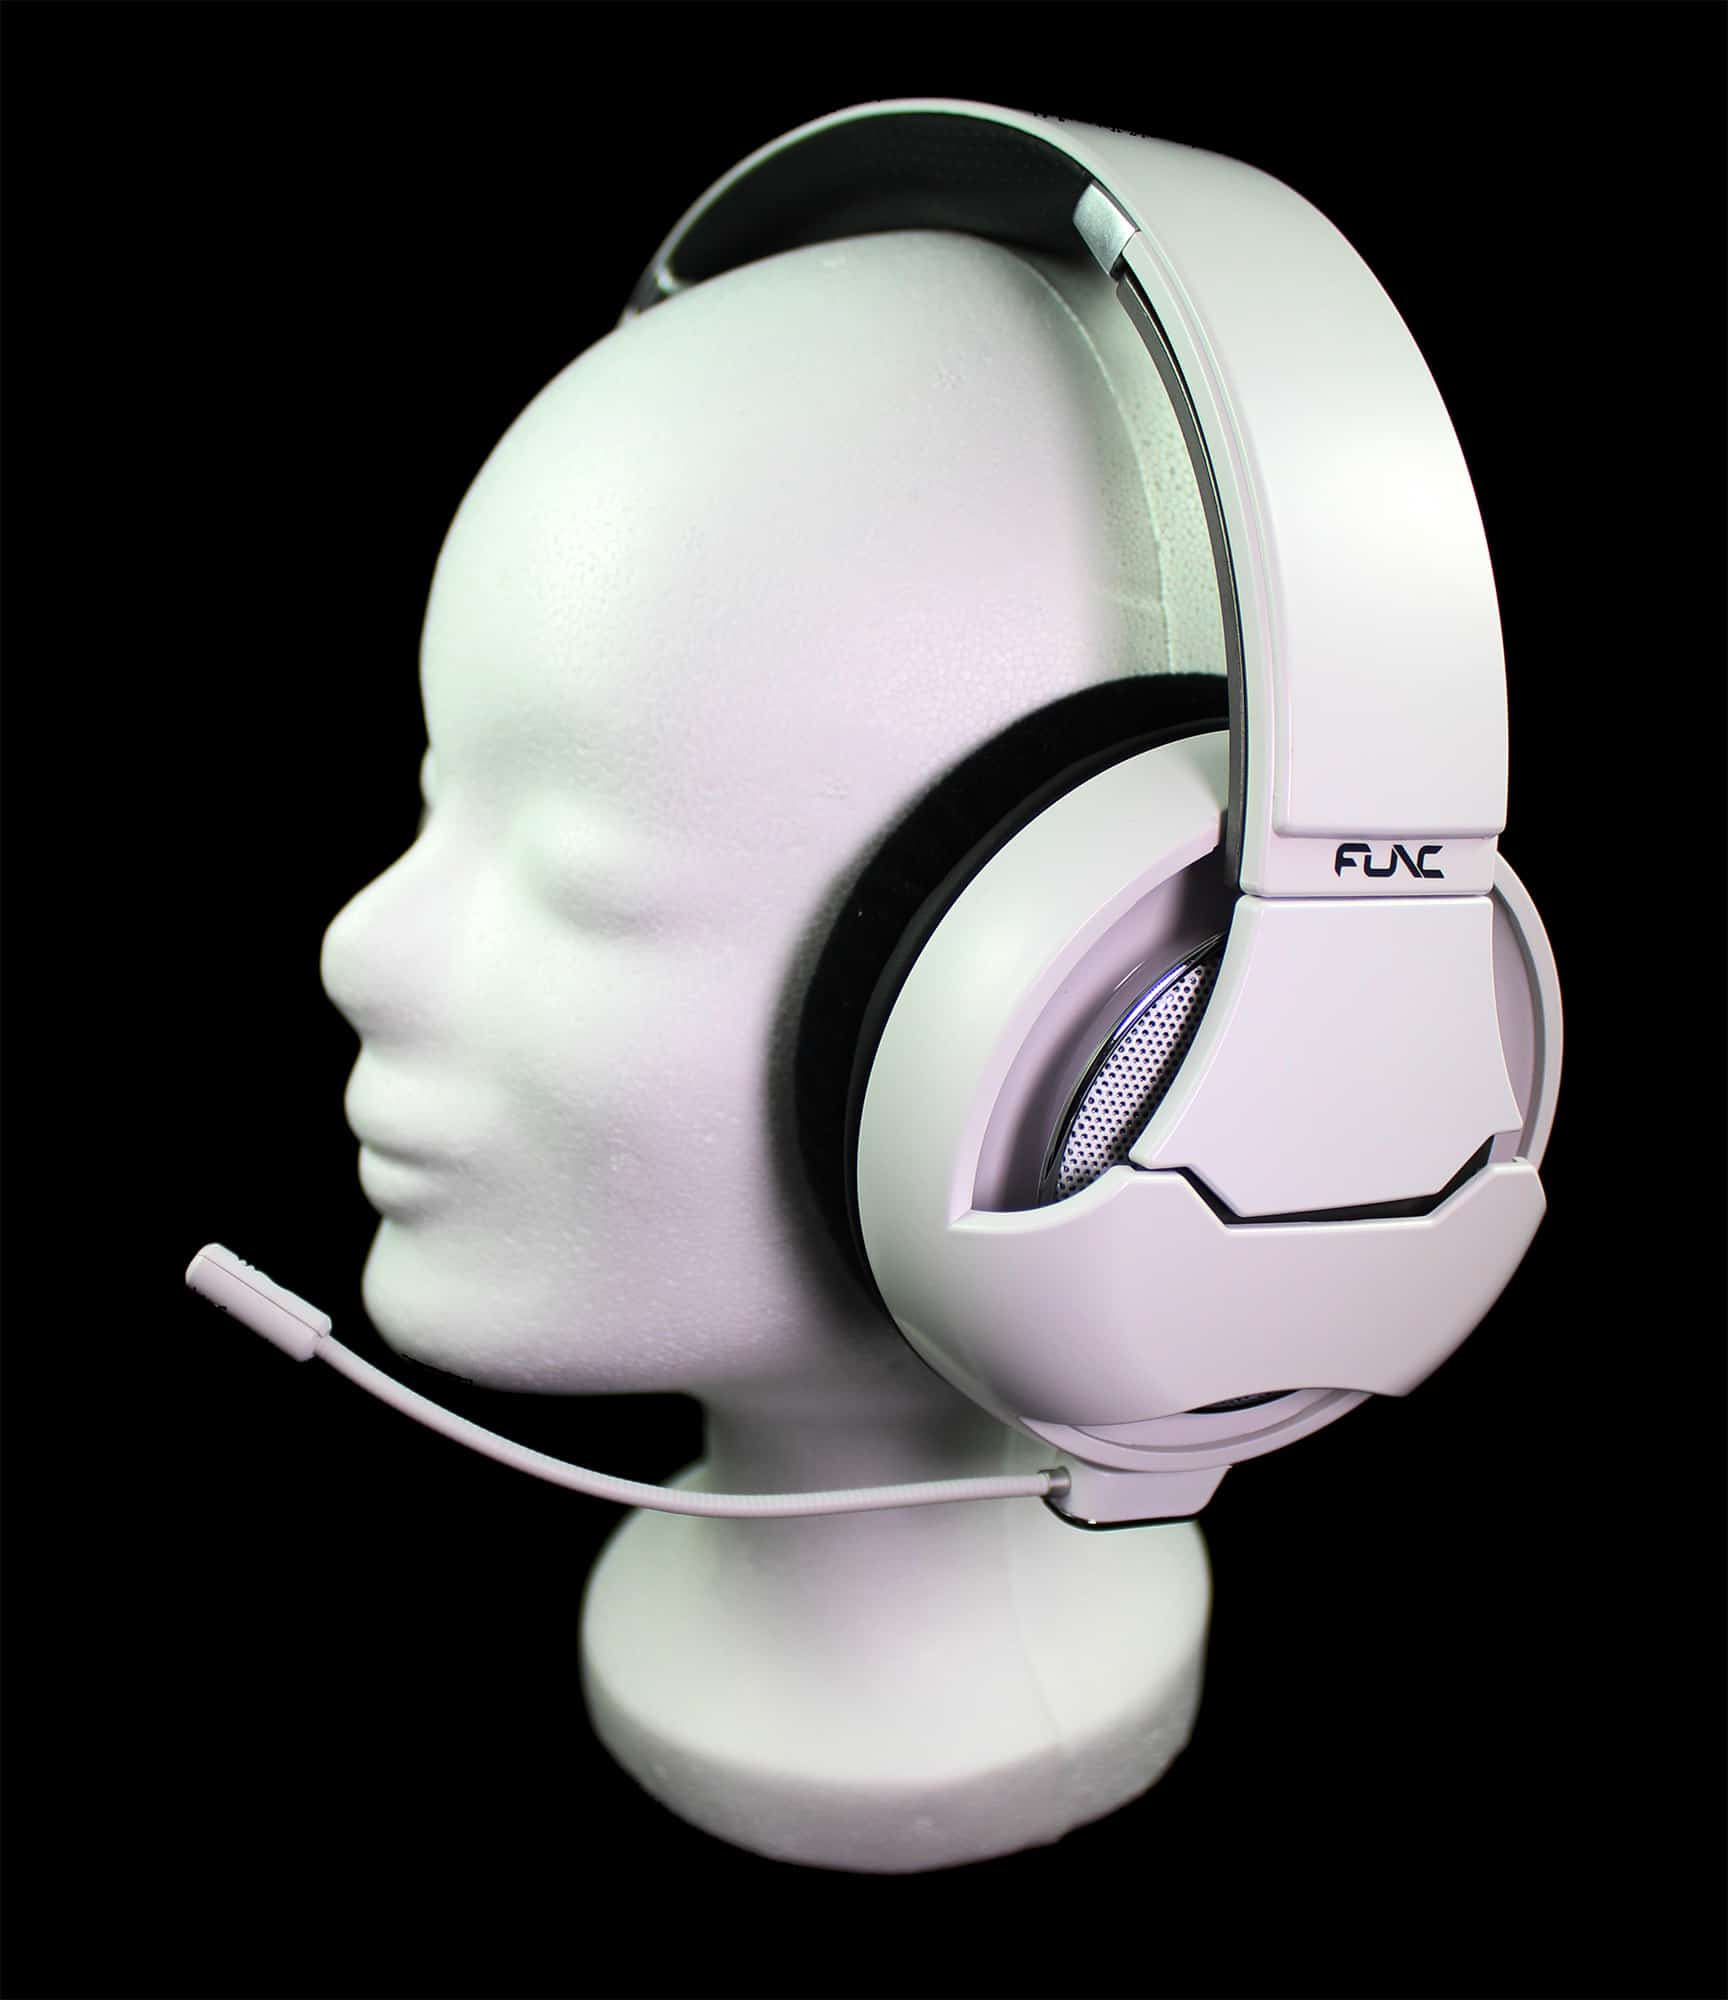 Photo of Testbericht: Gamer-Headset FUNC HS-260